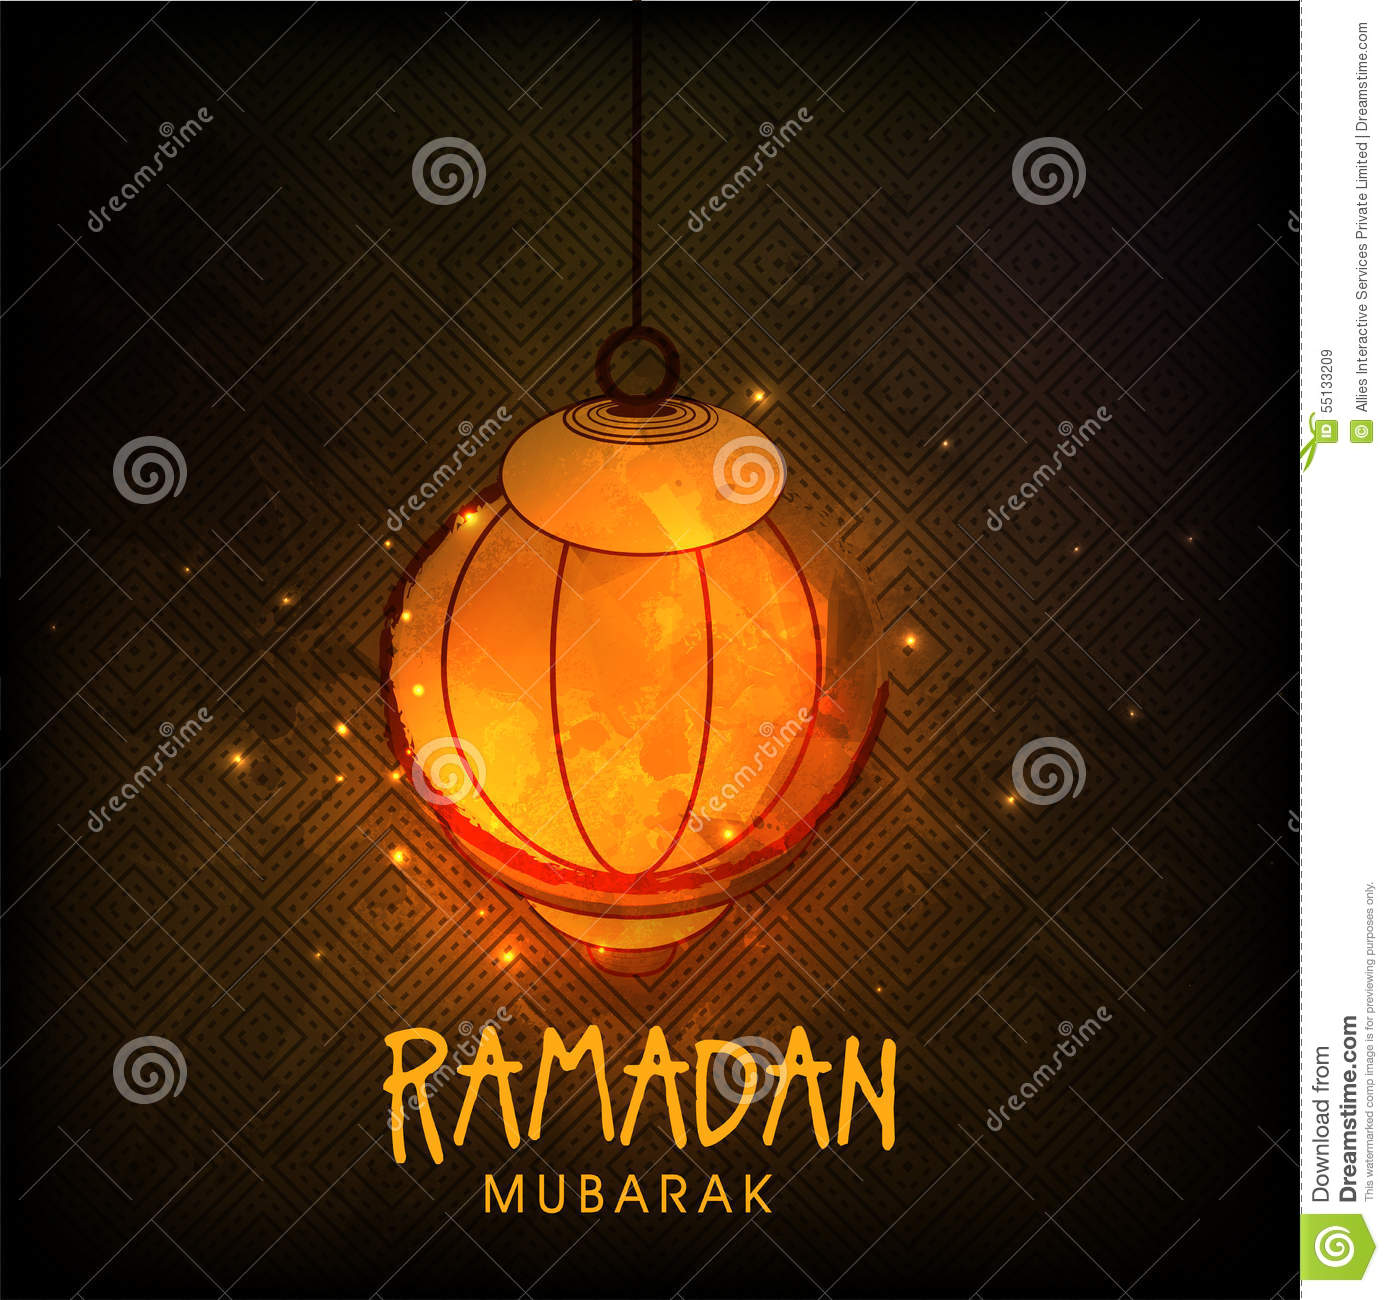 Creative lantern for Ramadan Mubarak celebration.